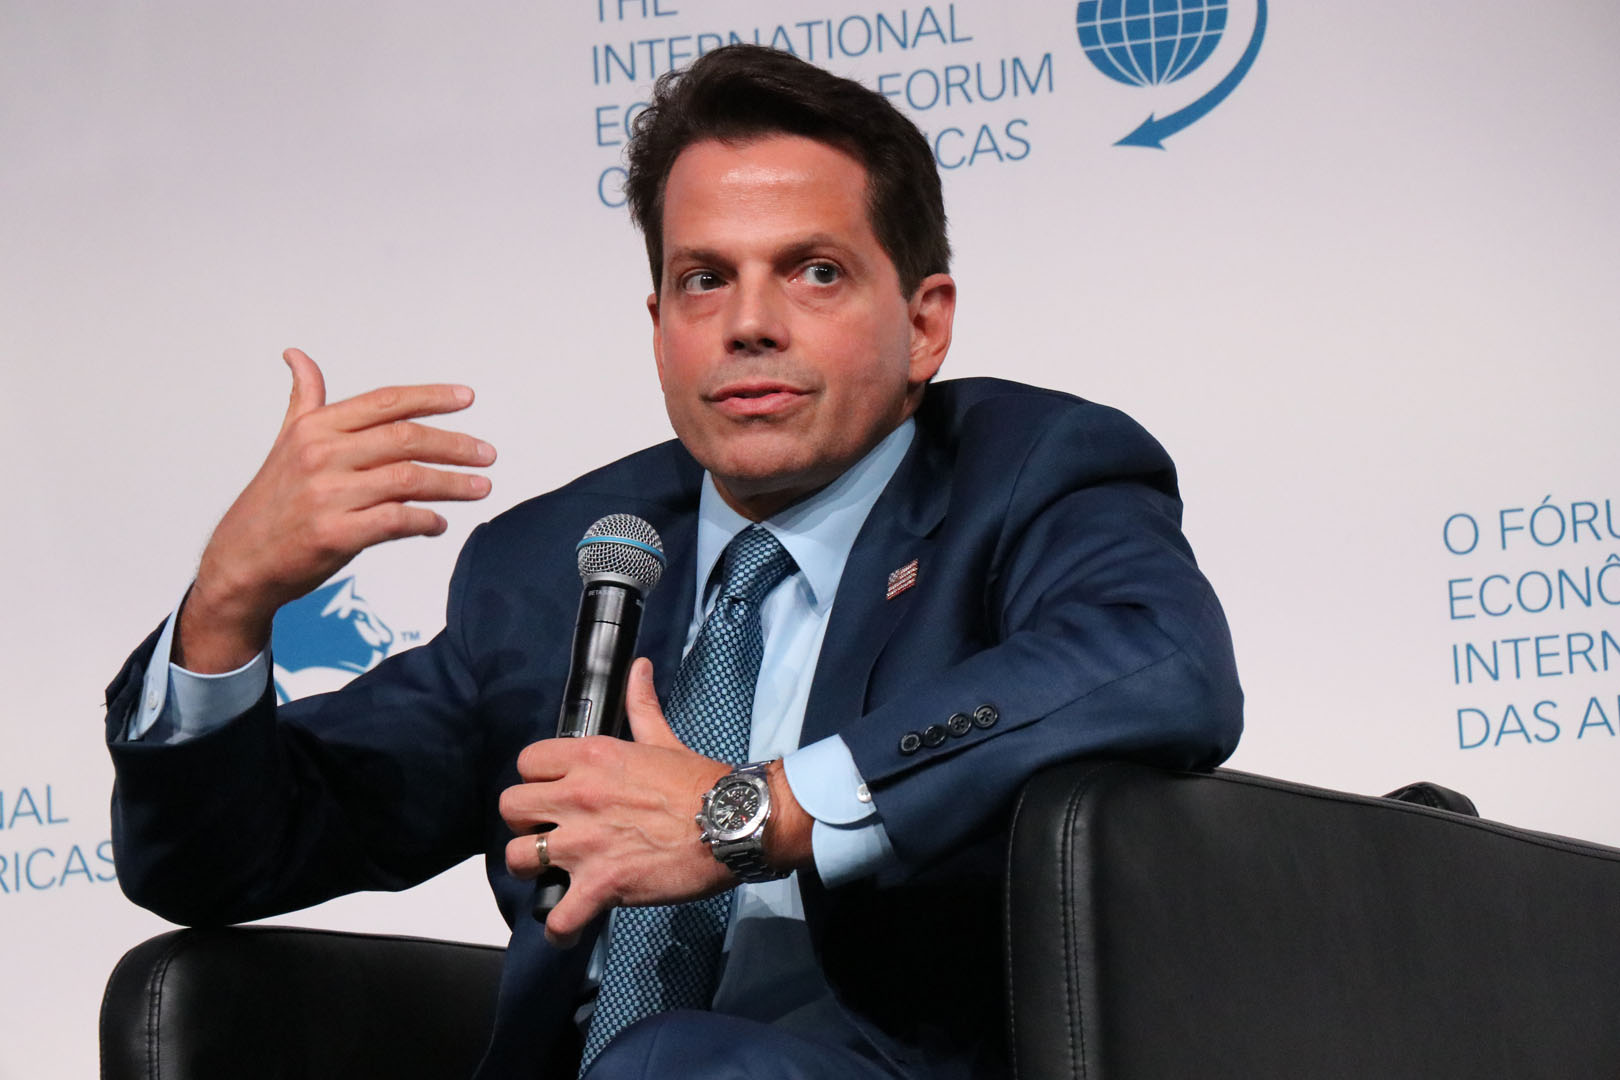 Anthony Scaramucci, Founder and Co-Managing Partner, SkyBridge Capital